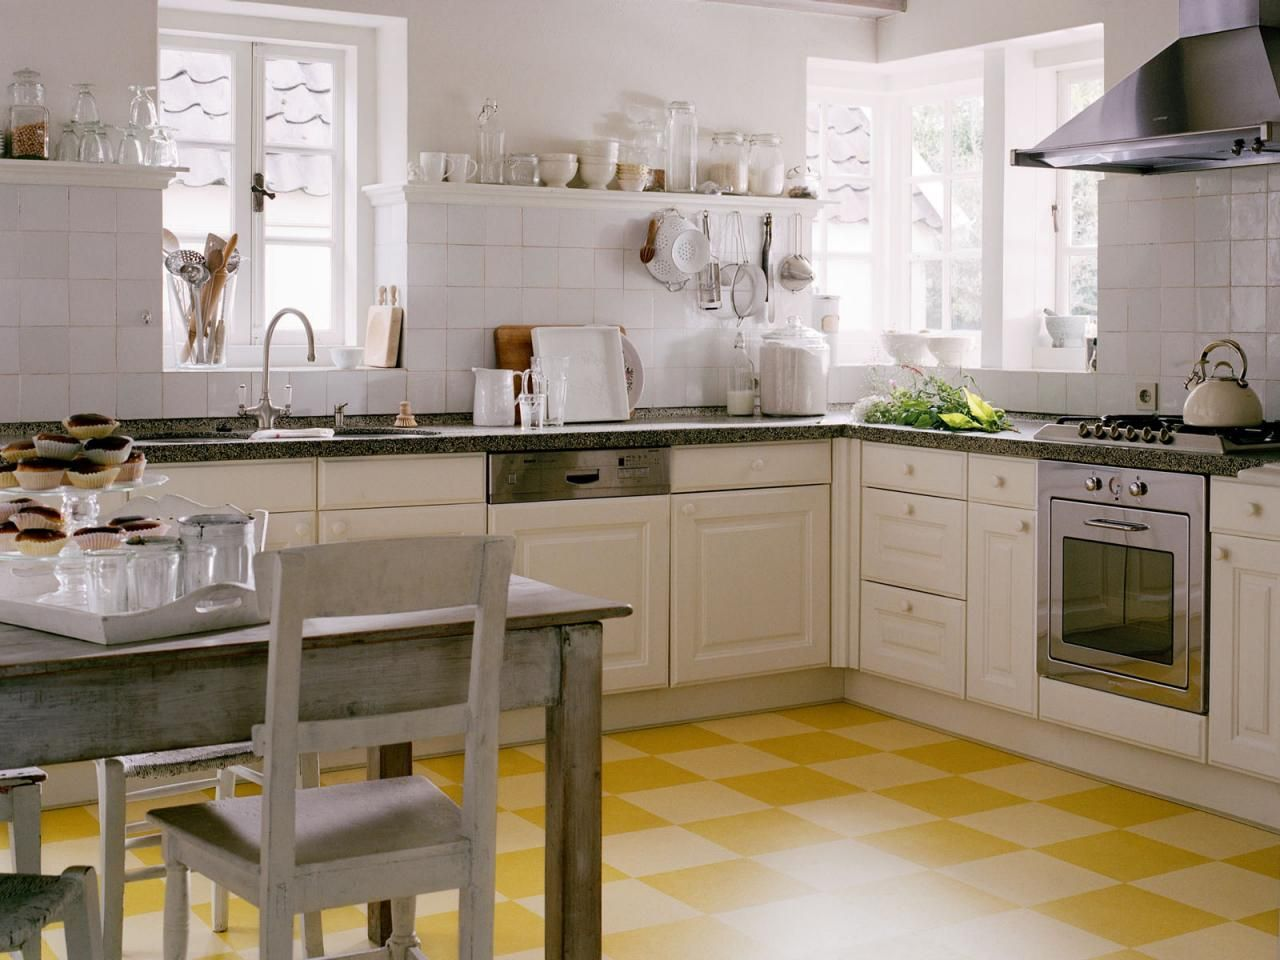 Vintage Kitchen Flooring Linoleum Kitchen Floors  Kitchen Floors Flooring Types And Kitchens